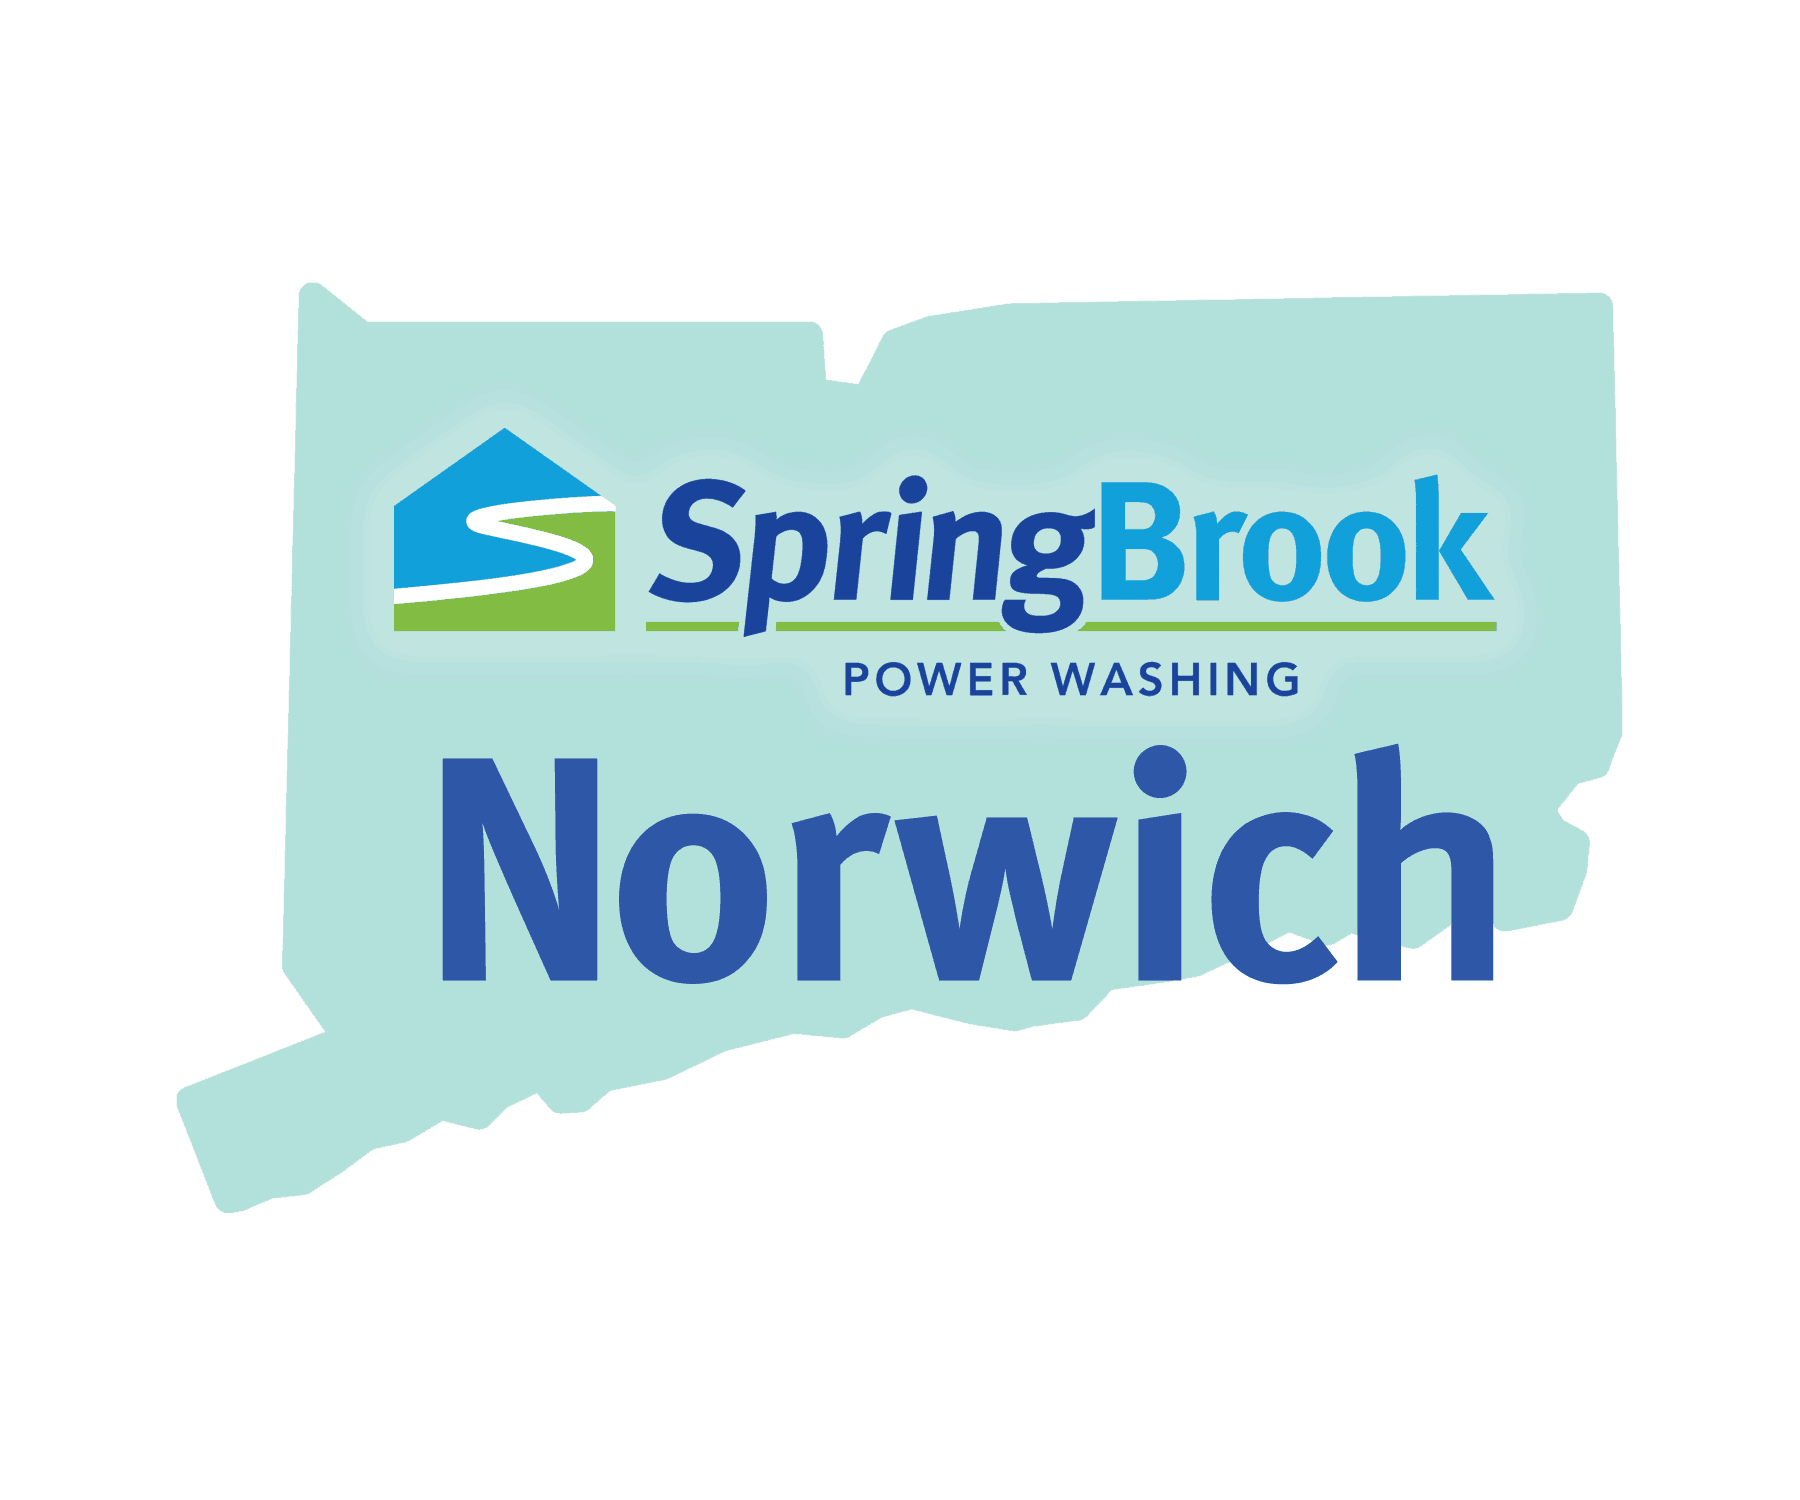 Springbrook Power Washing Norwich Connecticut